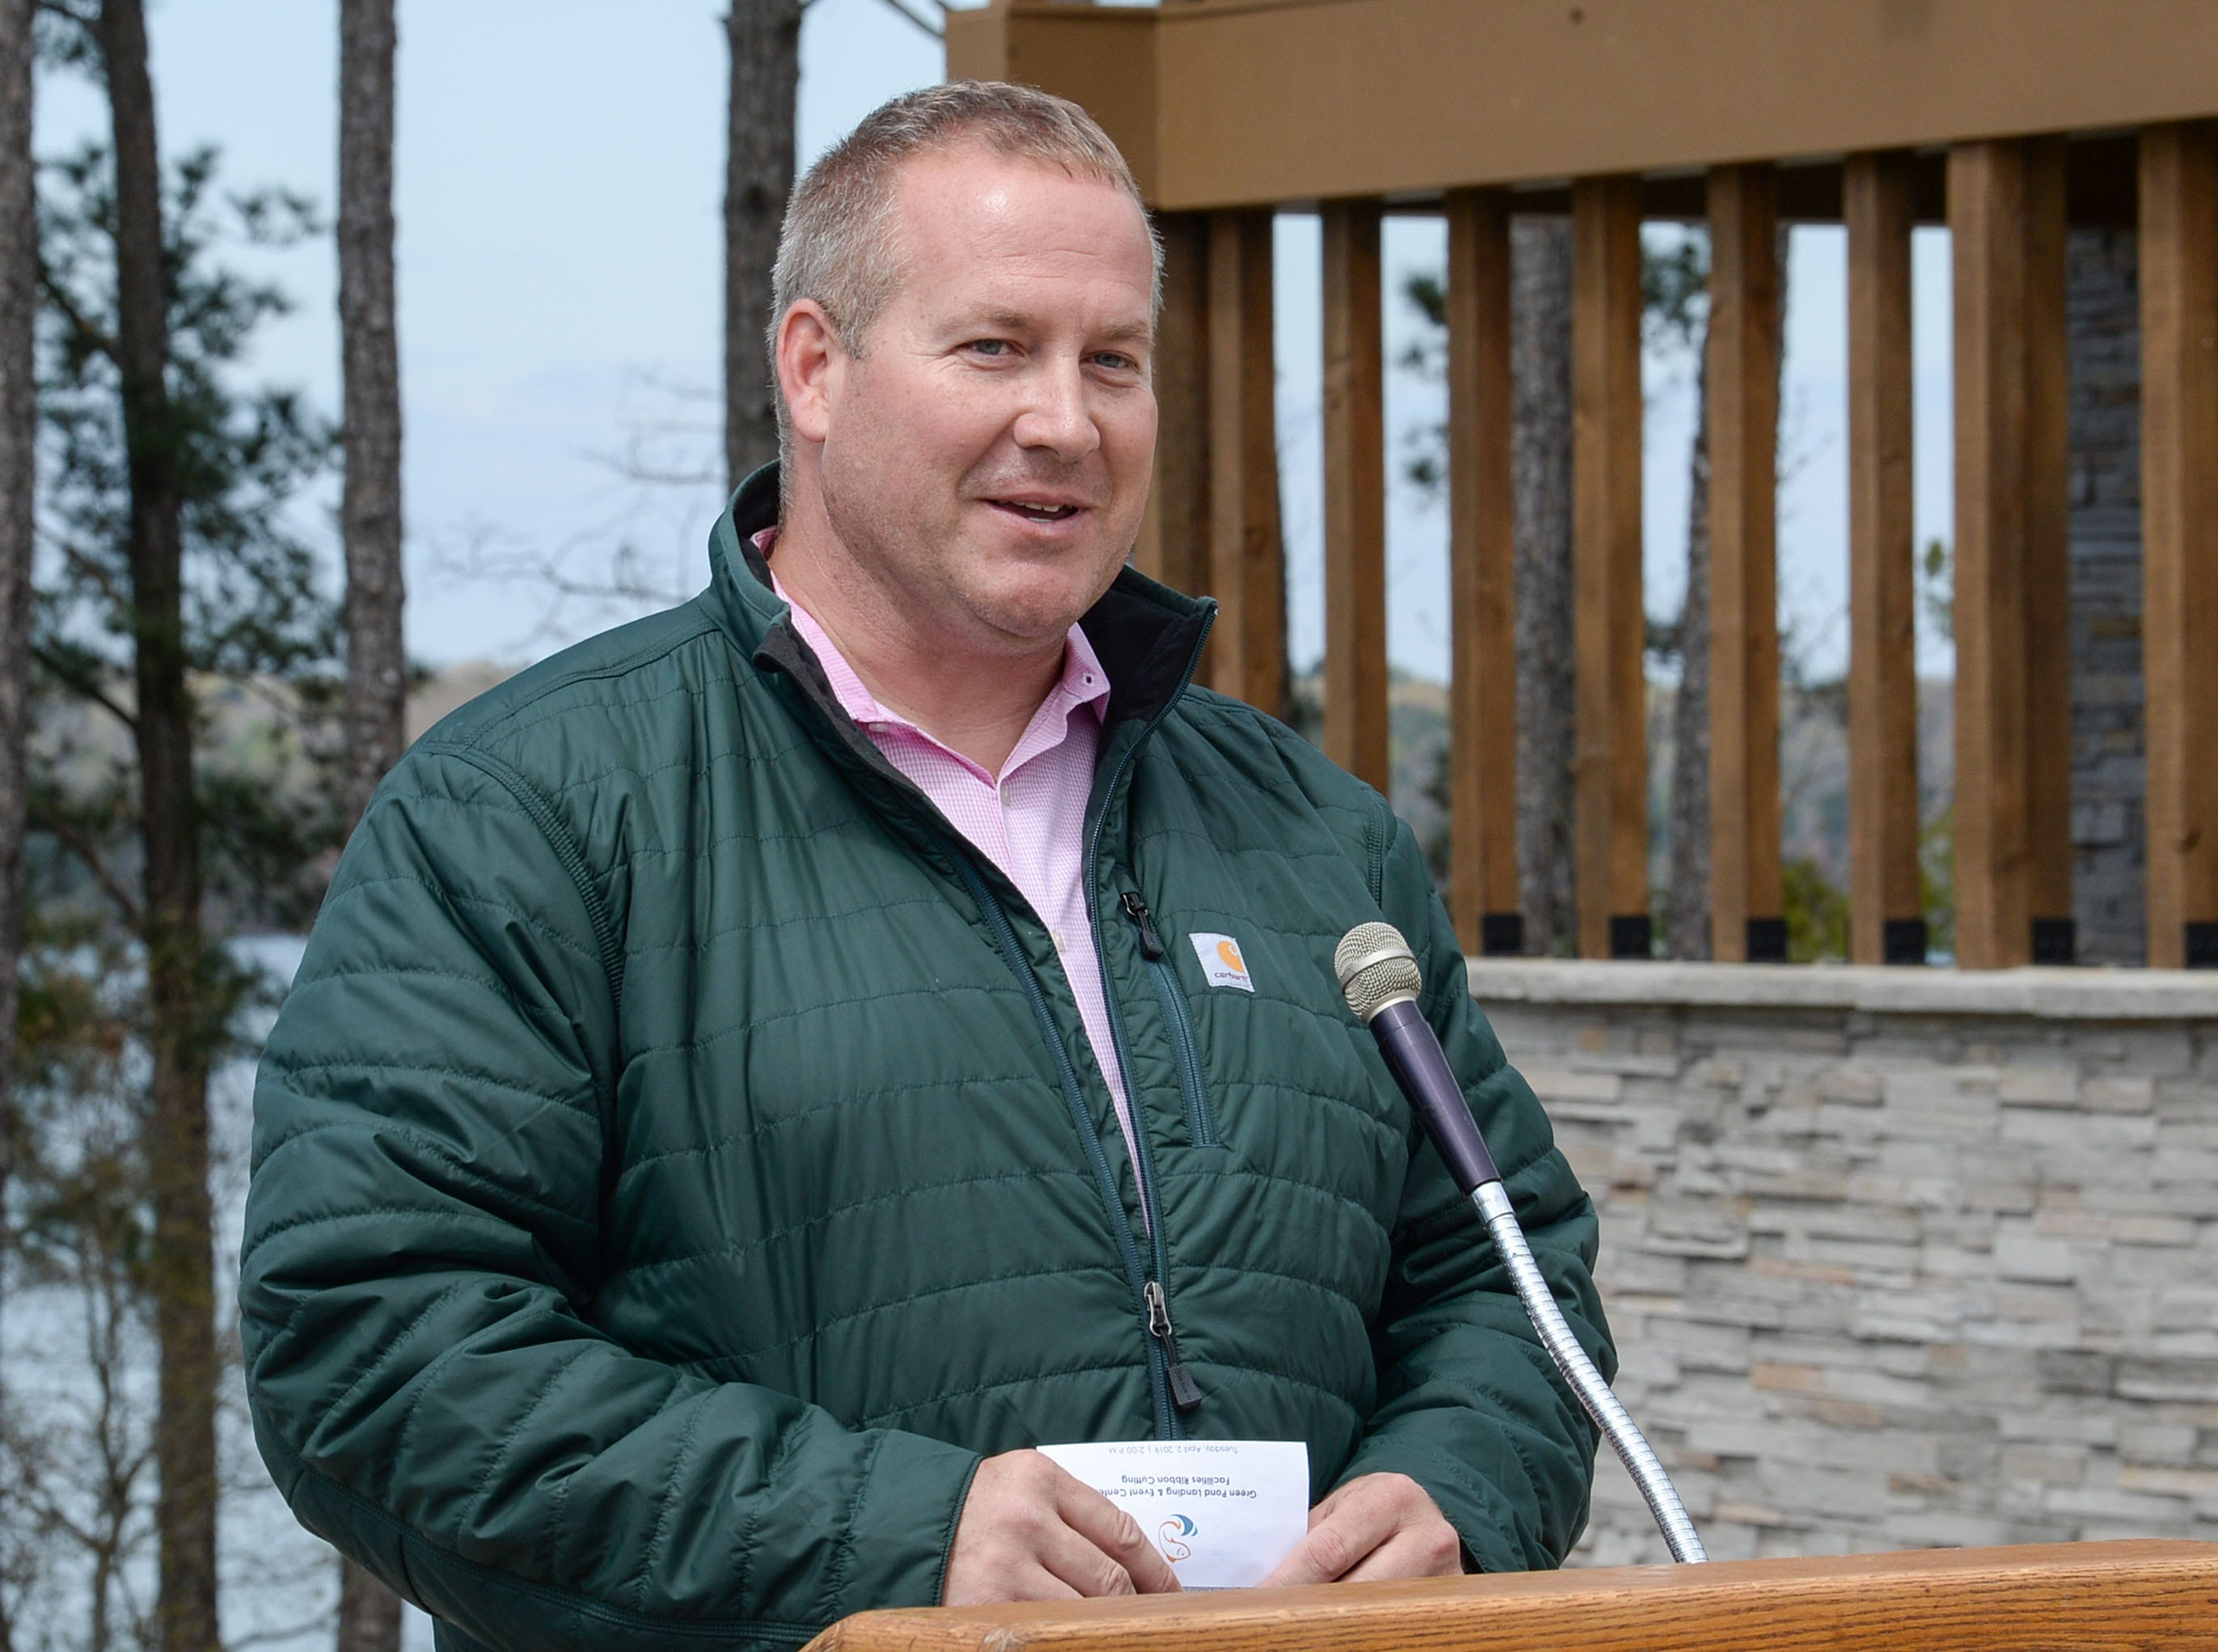 Matt Schell,  Anderson County Parks Department Manager,  speaks during the Green Pond Landing & Event Center Facilities ribbon cutting event in Anderson Tuesday.